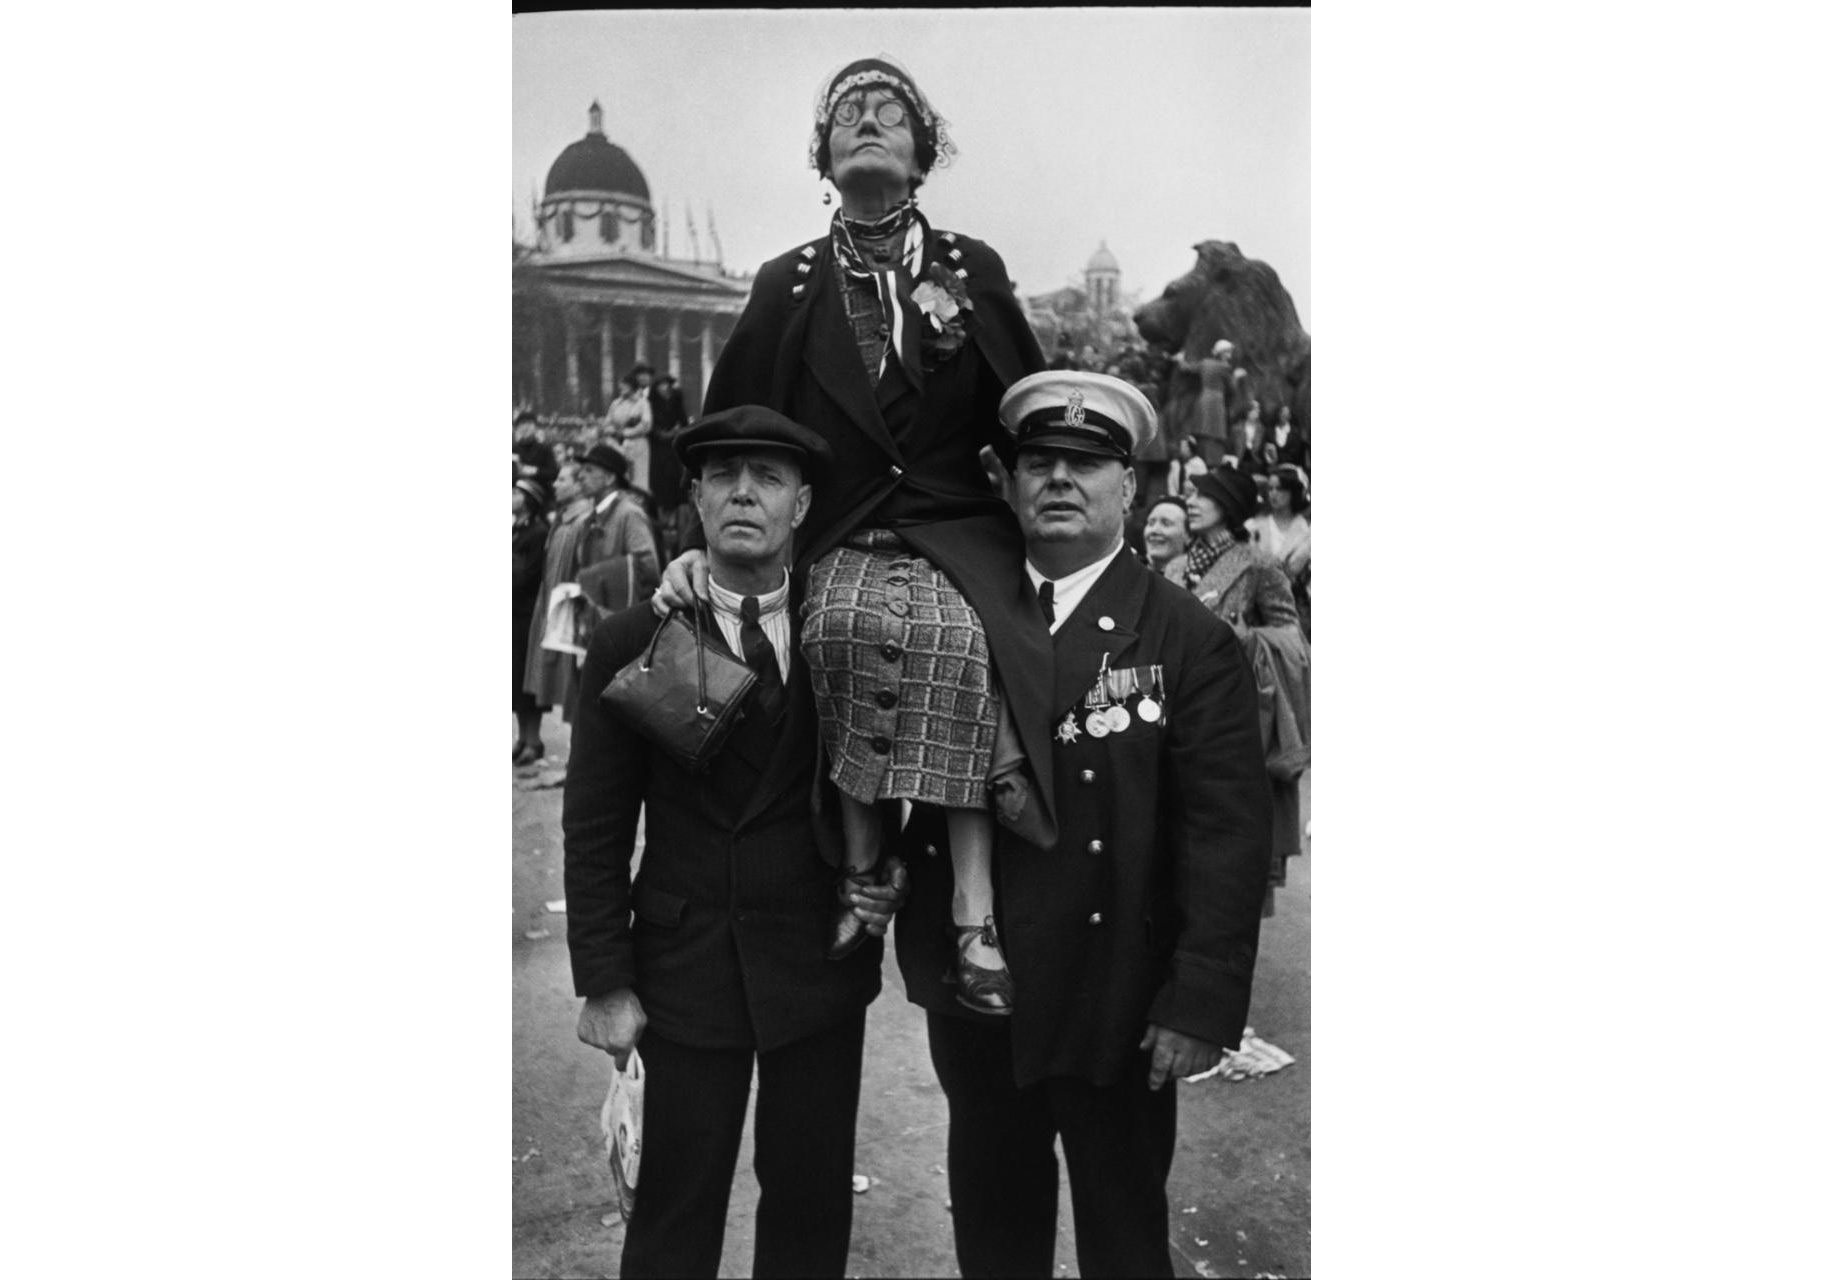 'Coronation of King George VI, Trafalgar Square, London (12 May 1937)' by Henri Cartier-Bresson CREDIT: MAGNUM PHOTOS